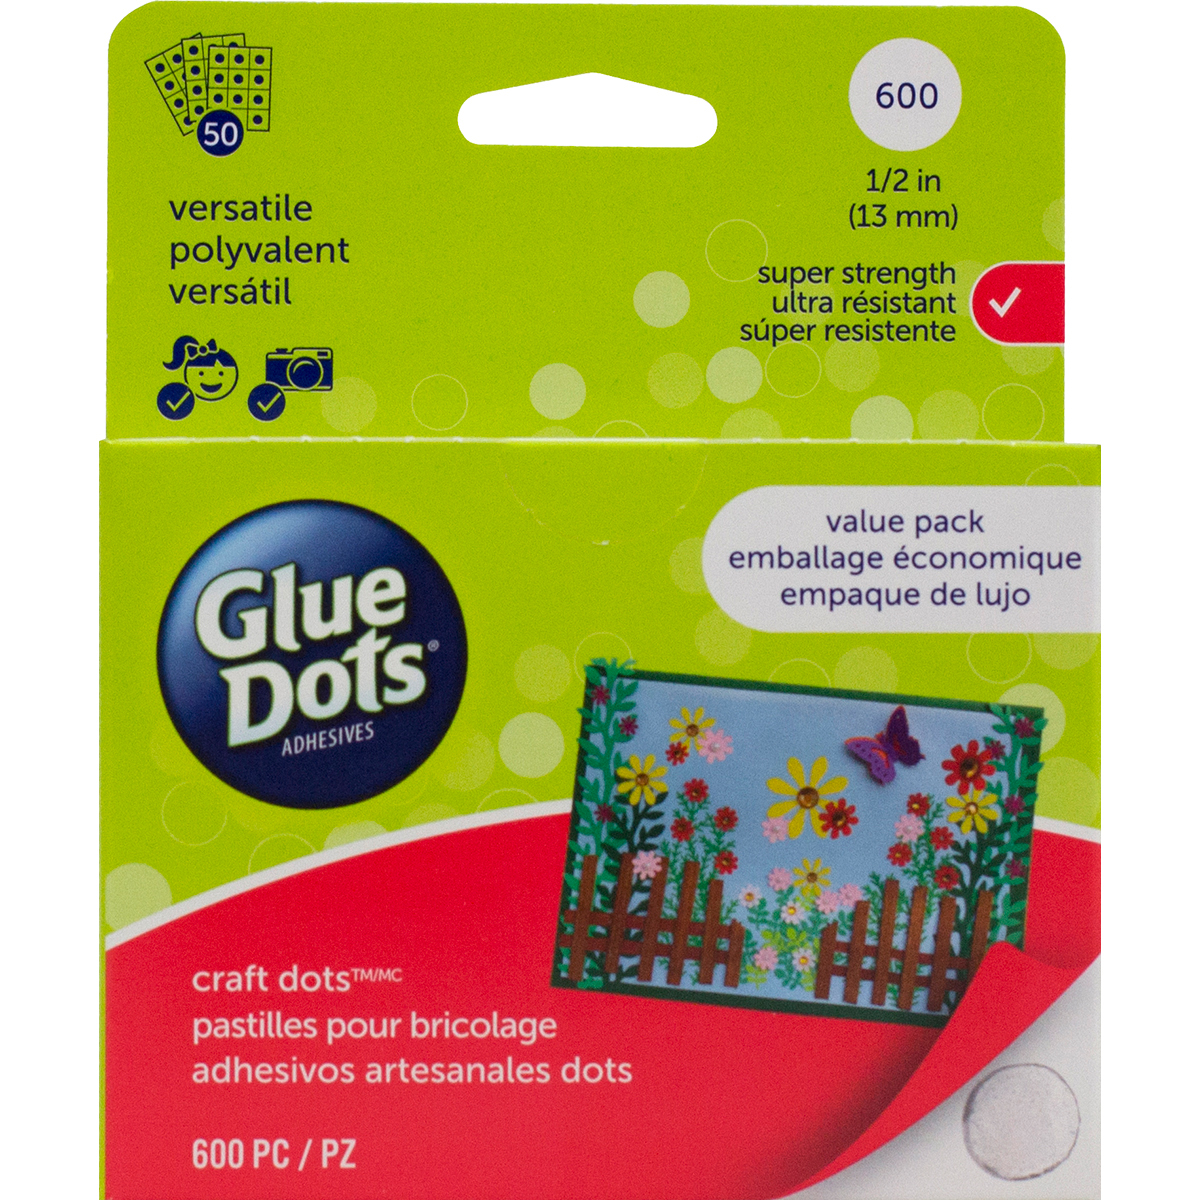 Glue Dots Craft dots